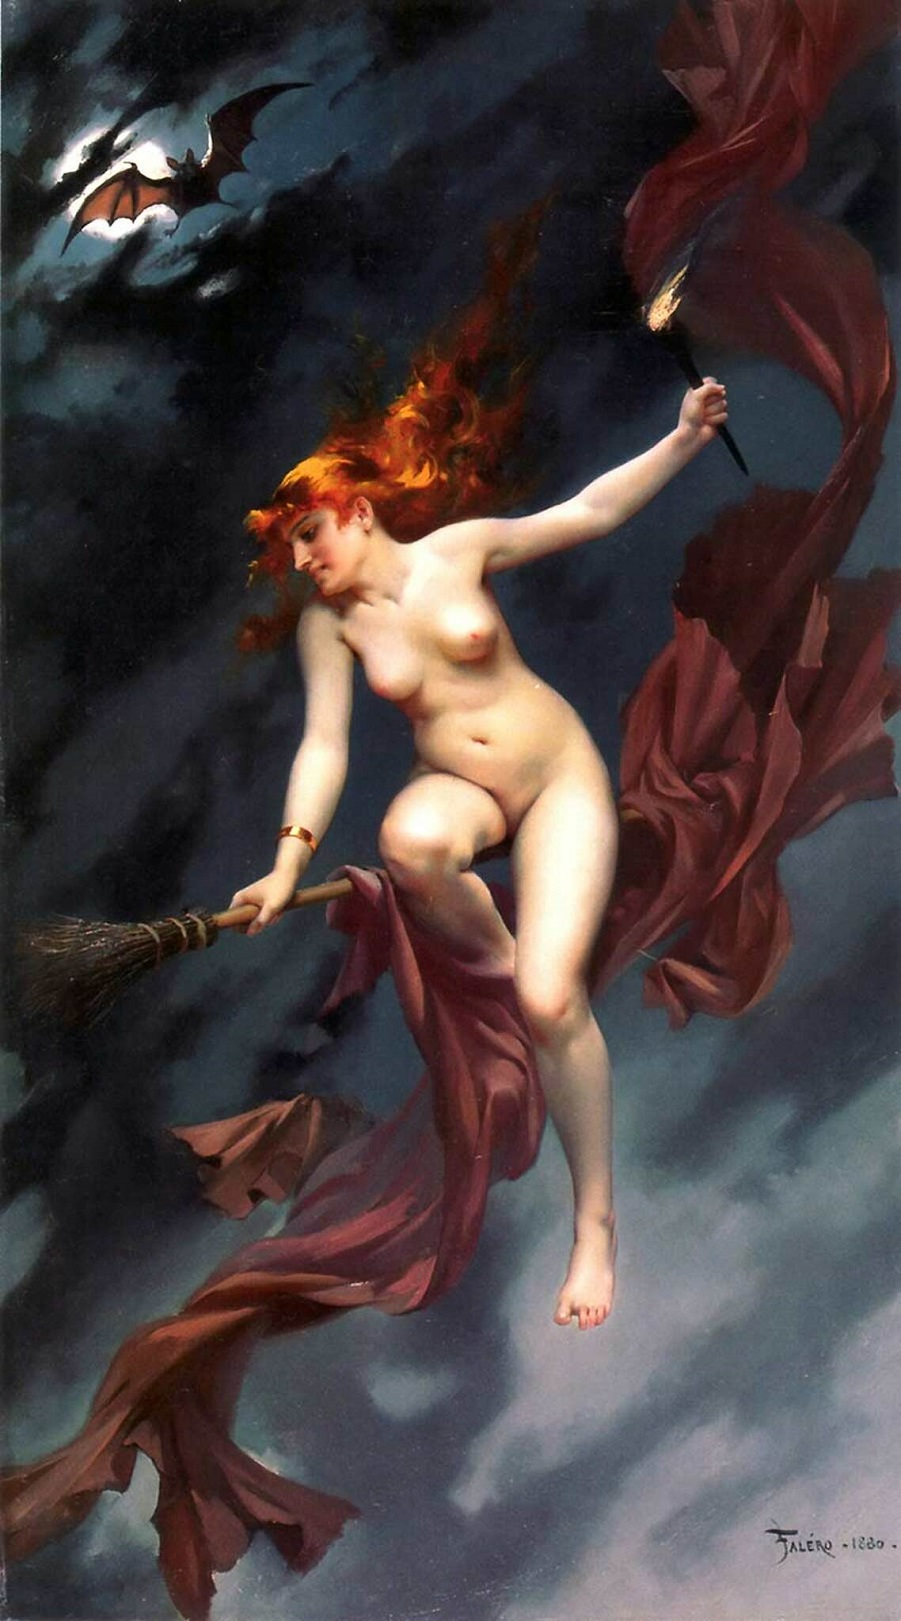 muse-of-the-night-_also-known-as-the-witches-sabbath__luis-falero__24791__58305.1567270029.jpg